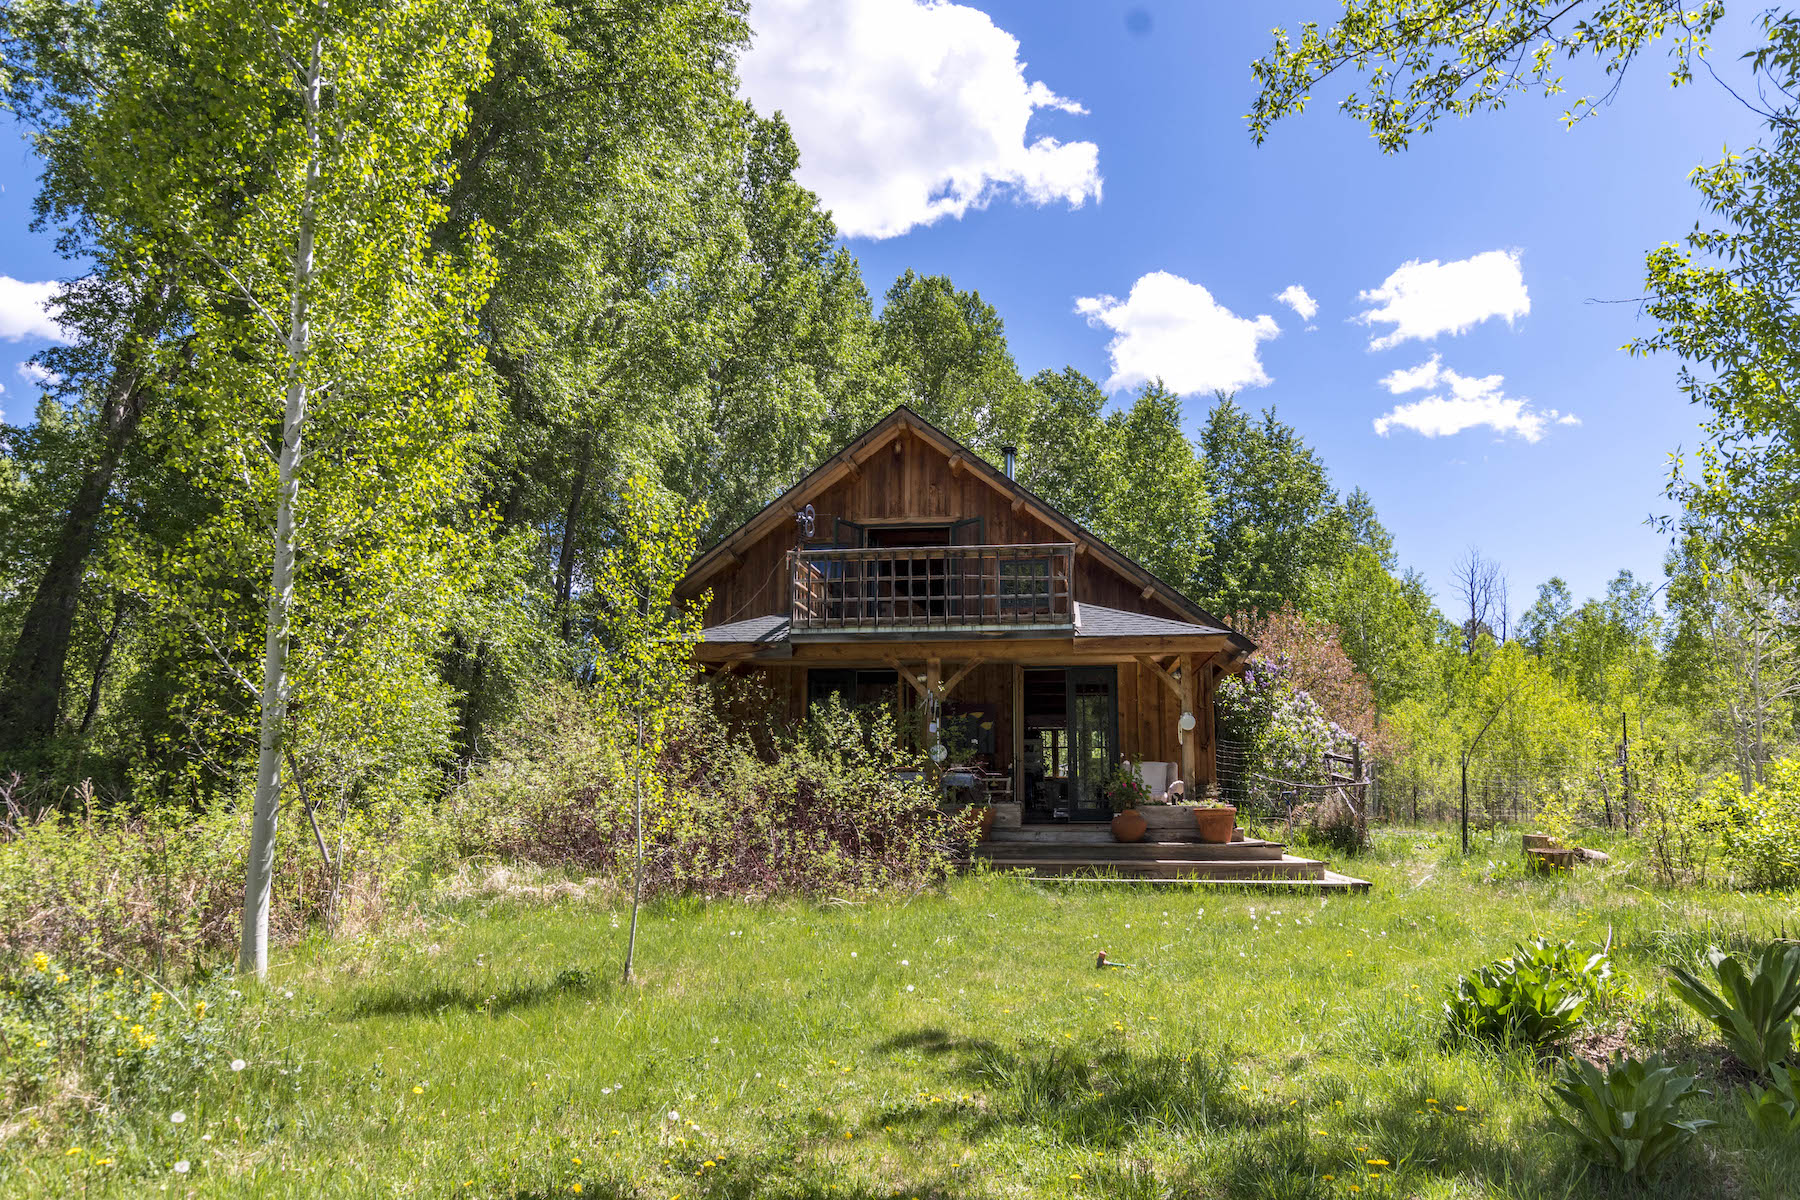 Single Family Homes for Sale at Clear Water Farm 21055 Highway 140 Hesperus, Colorado 81326 United States